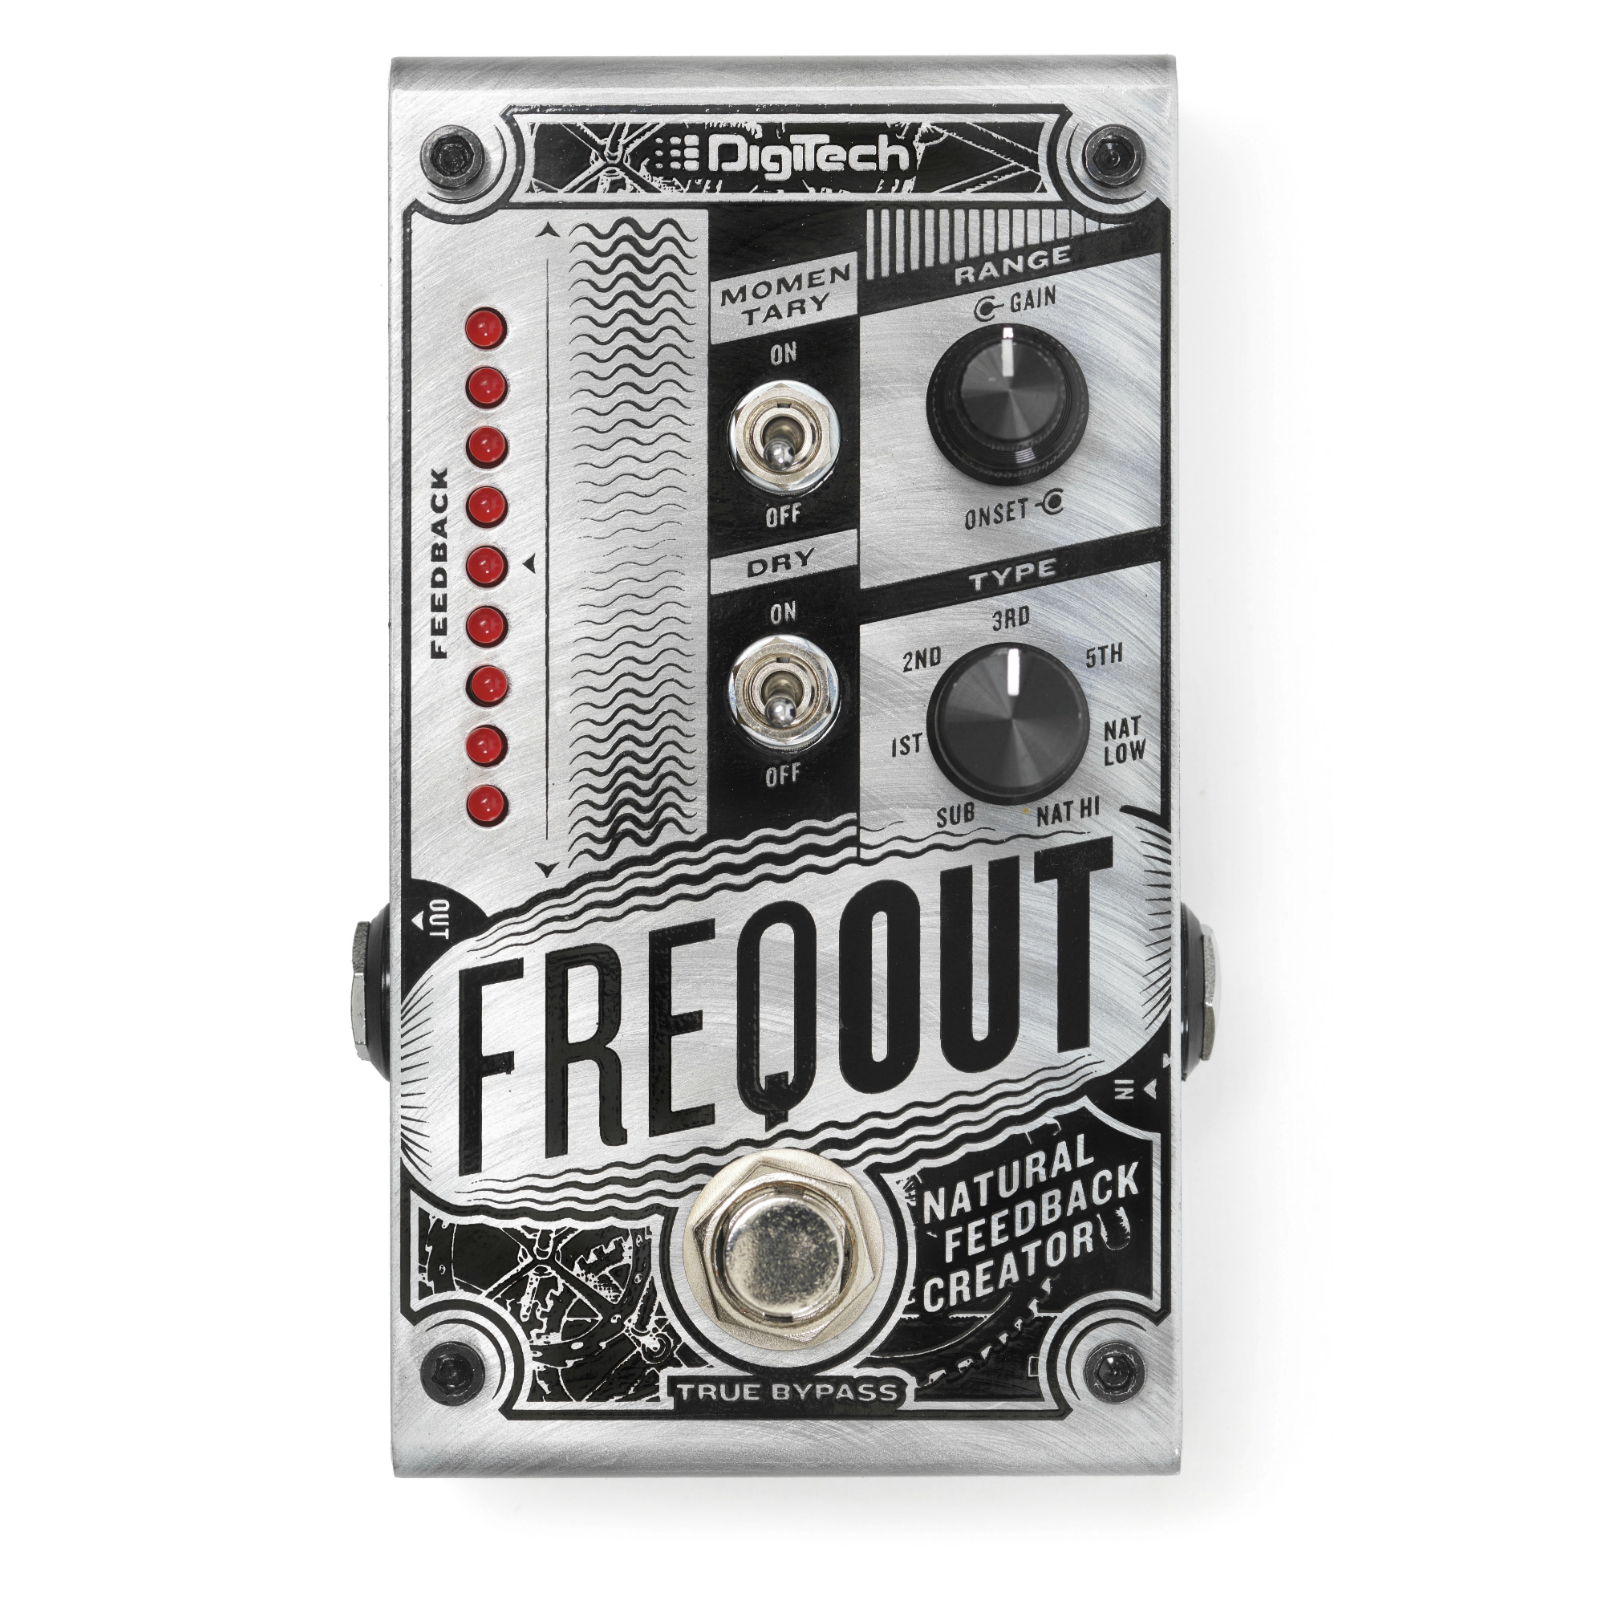 FreqOut - Silver - Natural Feedback Creator - Front